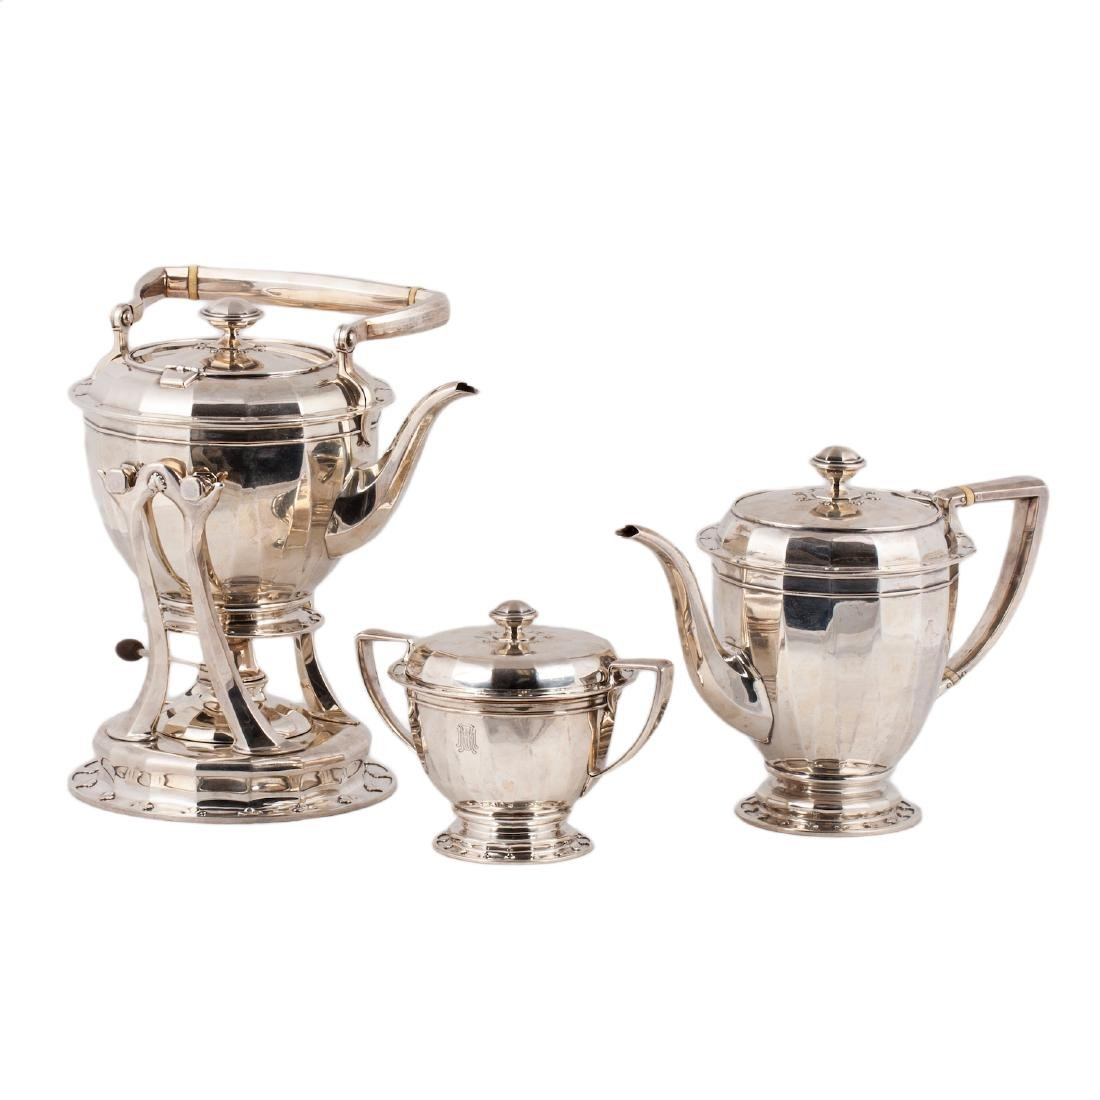 Tiffany & Co silver tea set of 3 pieces